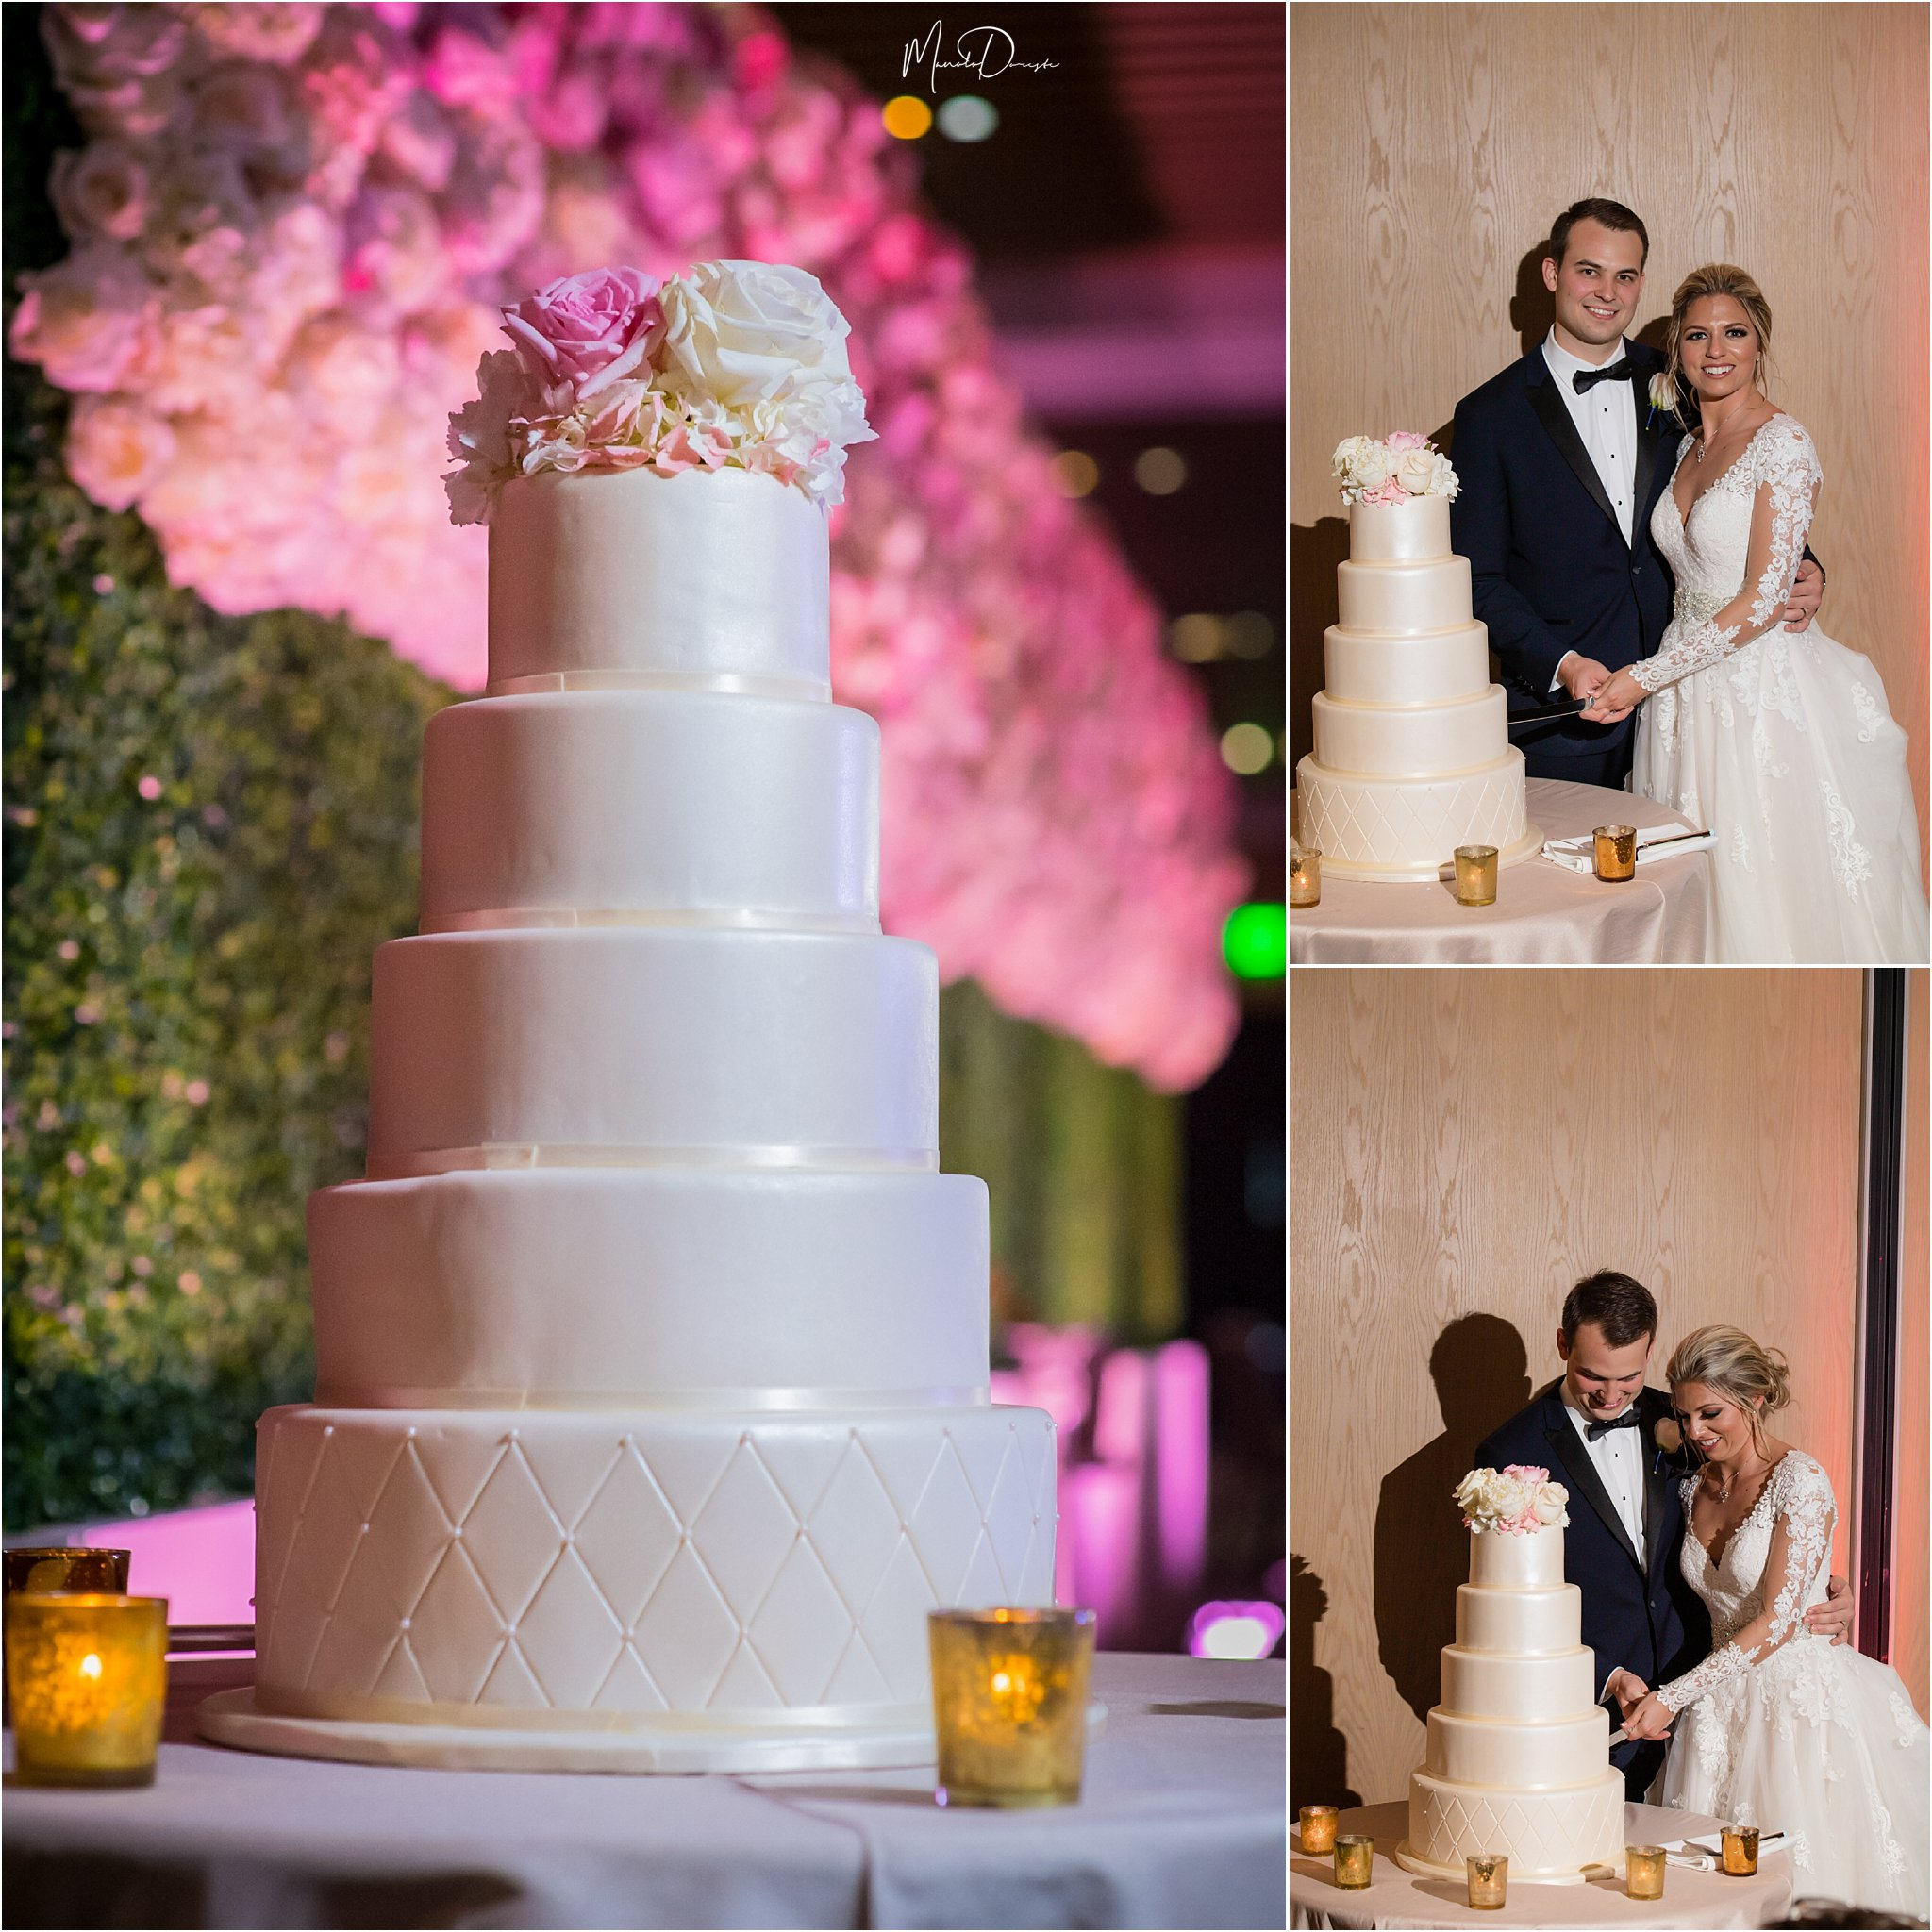 0274_ManoloDoreste_InFocusStudios_Wedding_Family_Photography_Miami_MiamiPhotographer.jpg